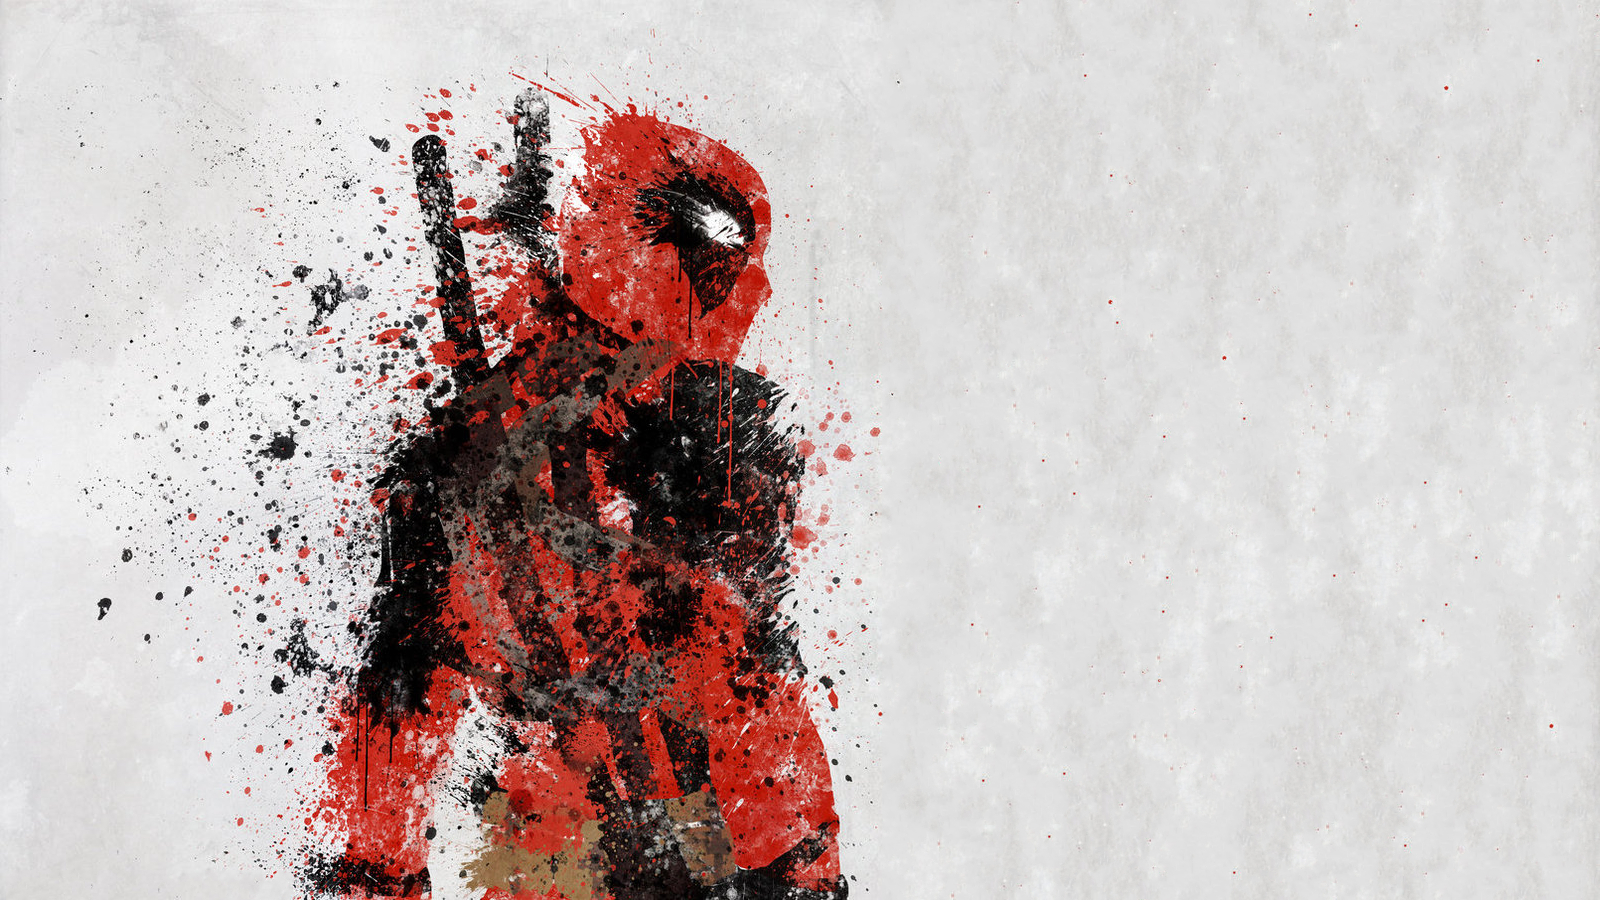 Deadpool Wallpaper Hd Free Download Pixelstalknet